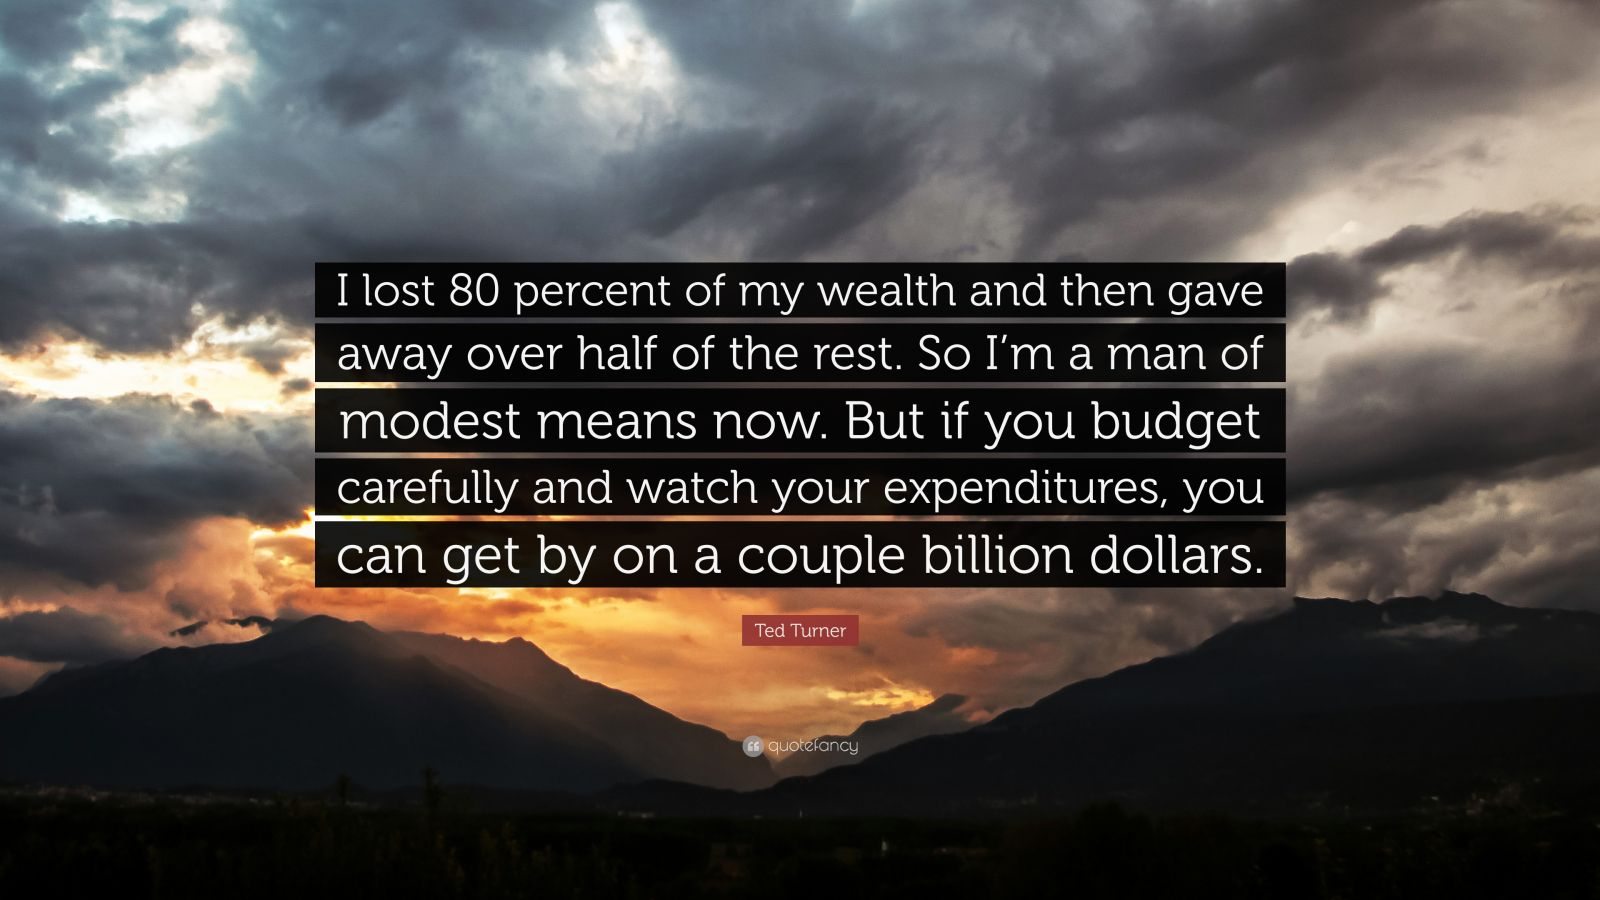 "Ted Turner Quote: ""I lost 80 percent of my wealth and then gave away over half of the rest. So I'm a man of modest means now. But if you budget carefully and watch your expenditures, you can get by on a couple billion dollars."""